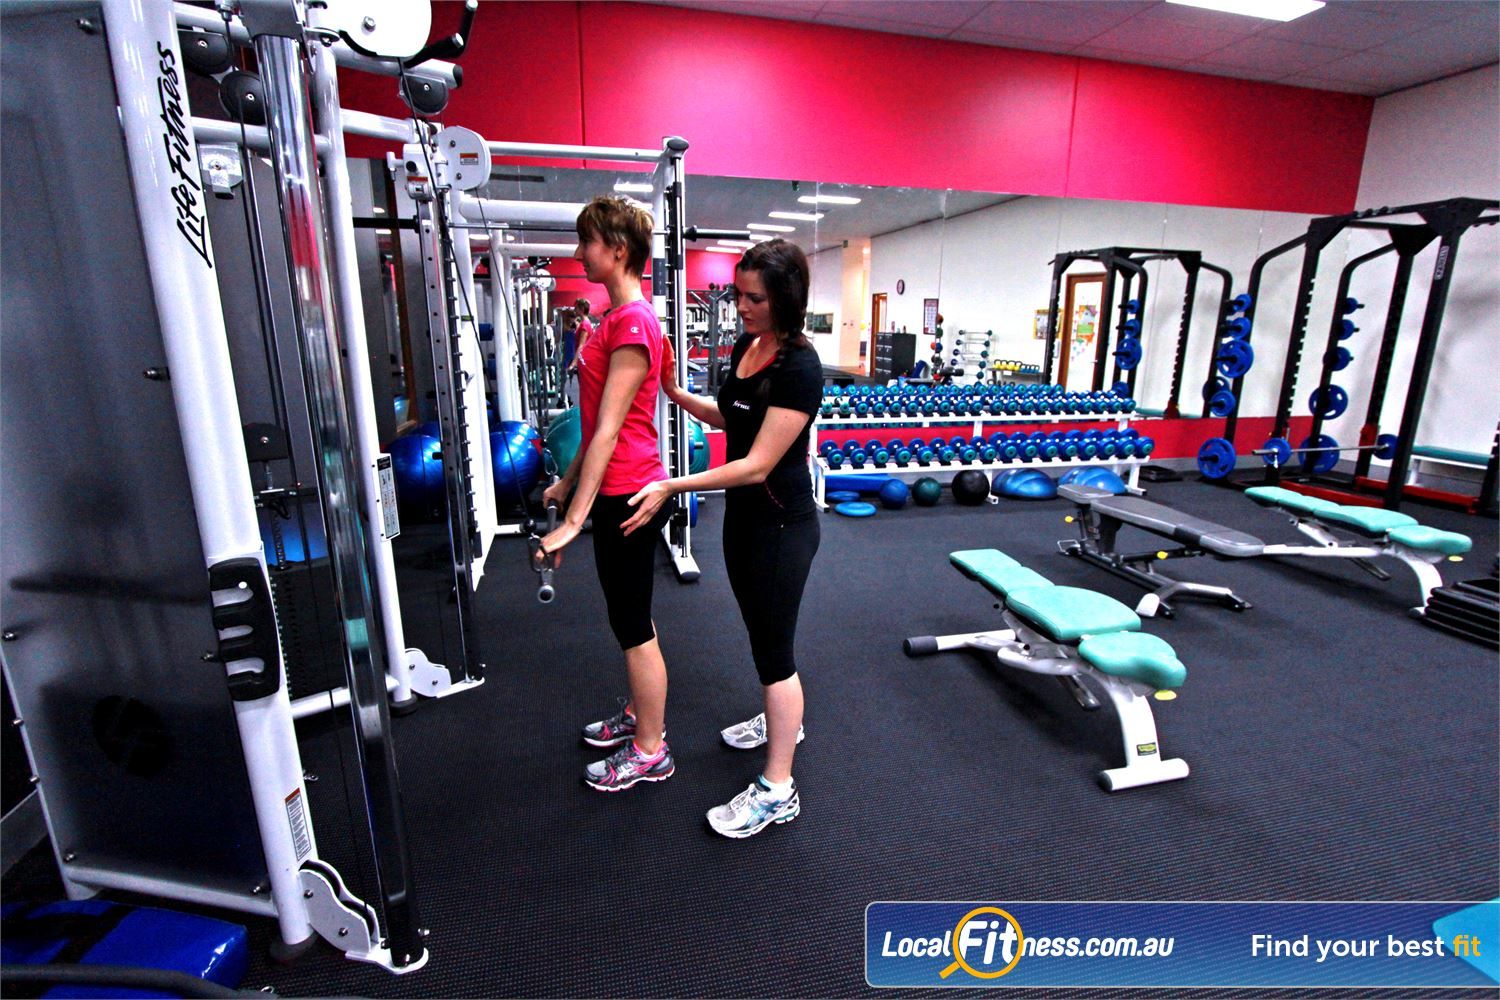 Fernwood Fitness Ferntree Gully Experience qualified exercise advice by our team of Ferntree Gully personal trainers.